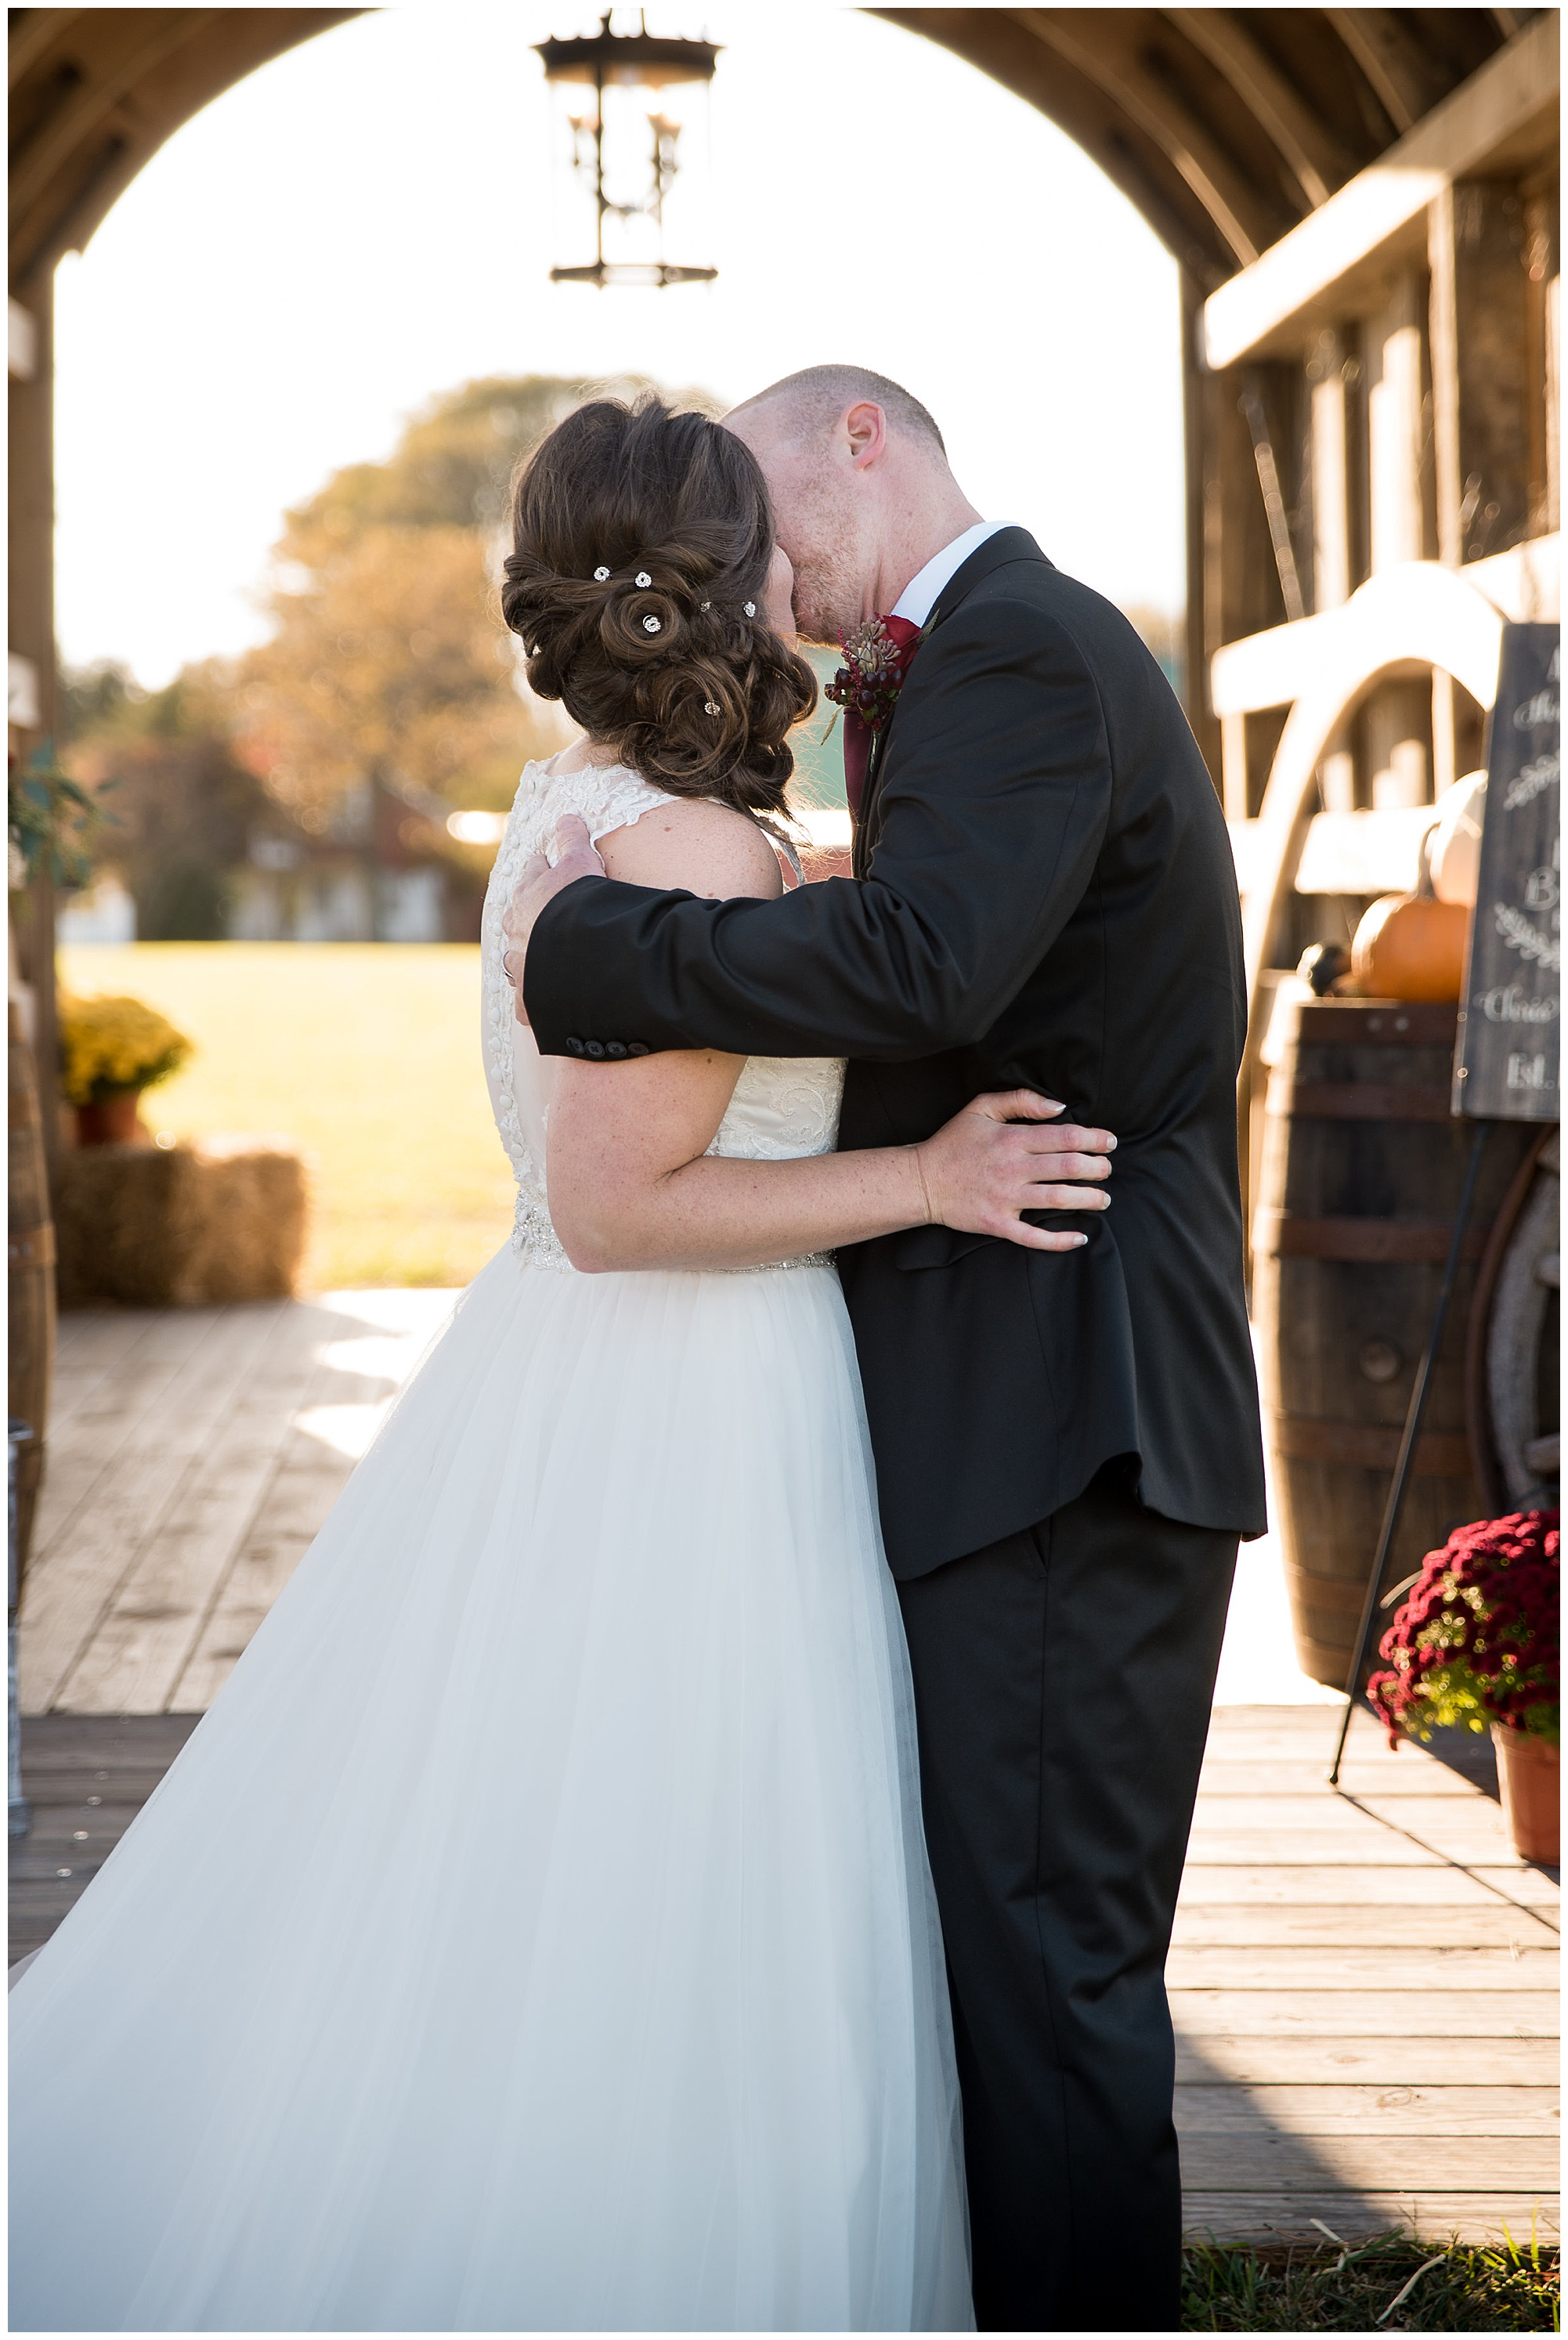 just married! wedding photos outdoors at covered bridge inn in lewes delaware. historic wedding barn venue on the eastern shore. fall wedding in november with rustic decor theme.